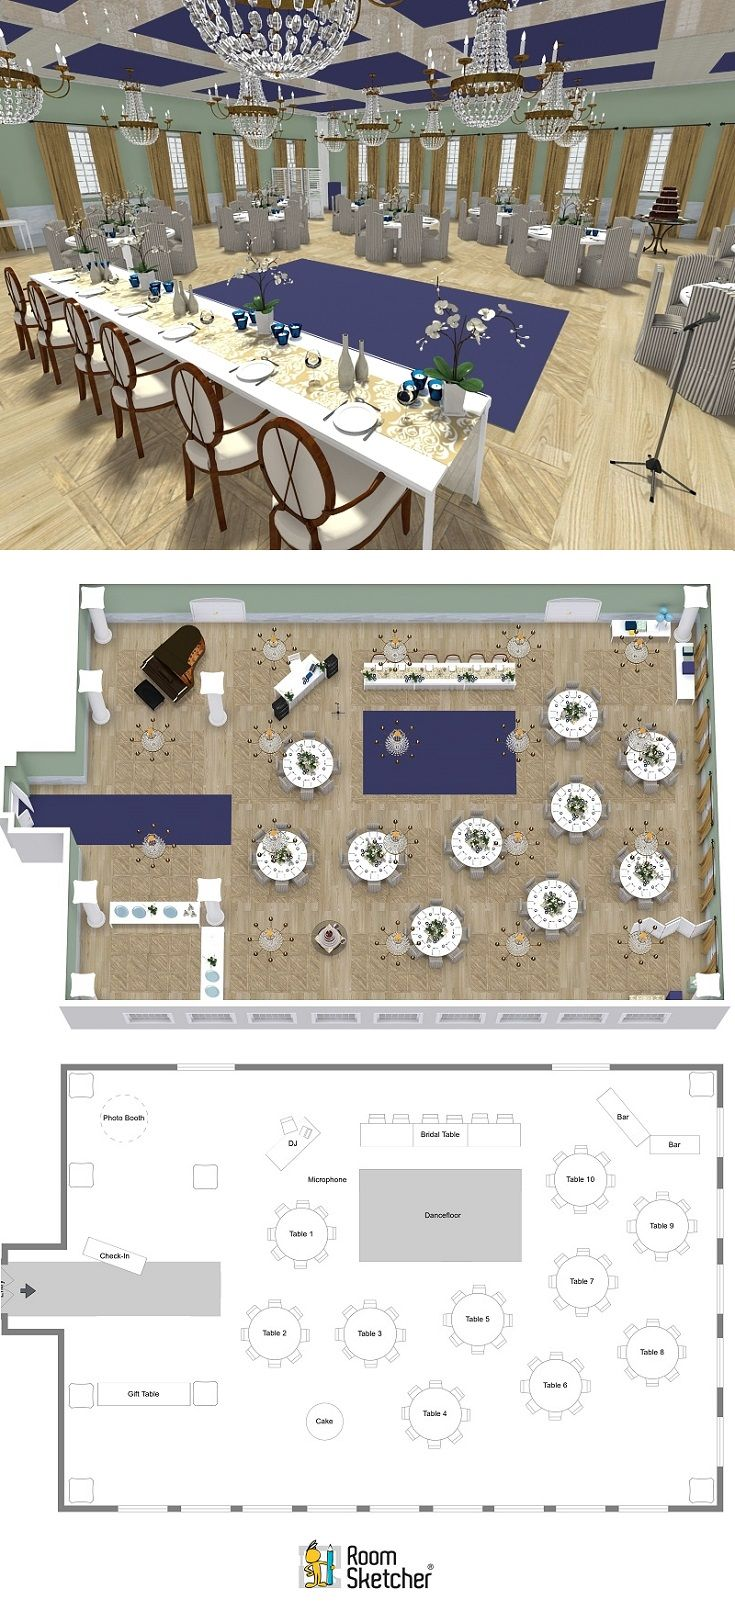 Planning a wedding for yourself or others? Try RoomSketcher Home Designer to plan and visualize your venue. Create floor plans, seating layouts, 3D images and more of your event planning ideas.  http://www.roomsketcher.com/features/home-designer/  #weddingplanning #eventplanning #weddingideas #eventplans #weddingplanner #weddingprep #weddingfloorplan #weddingvenue